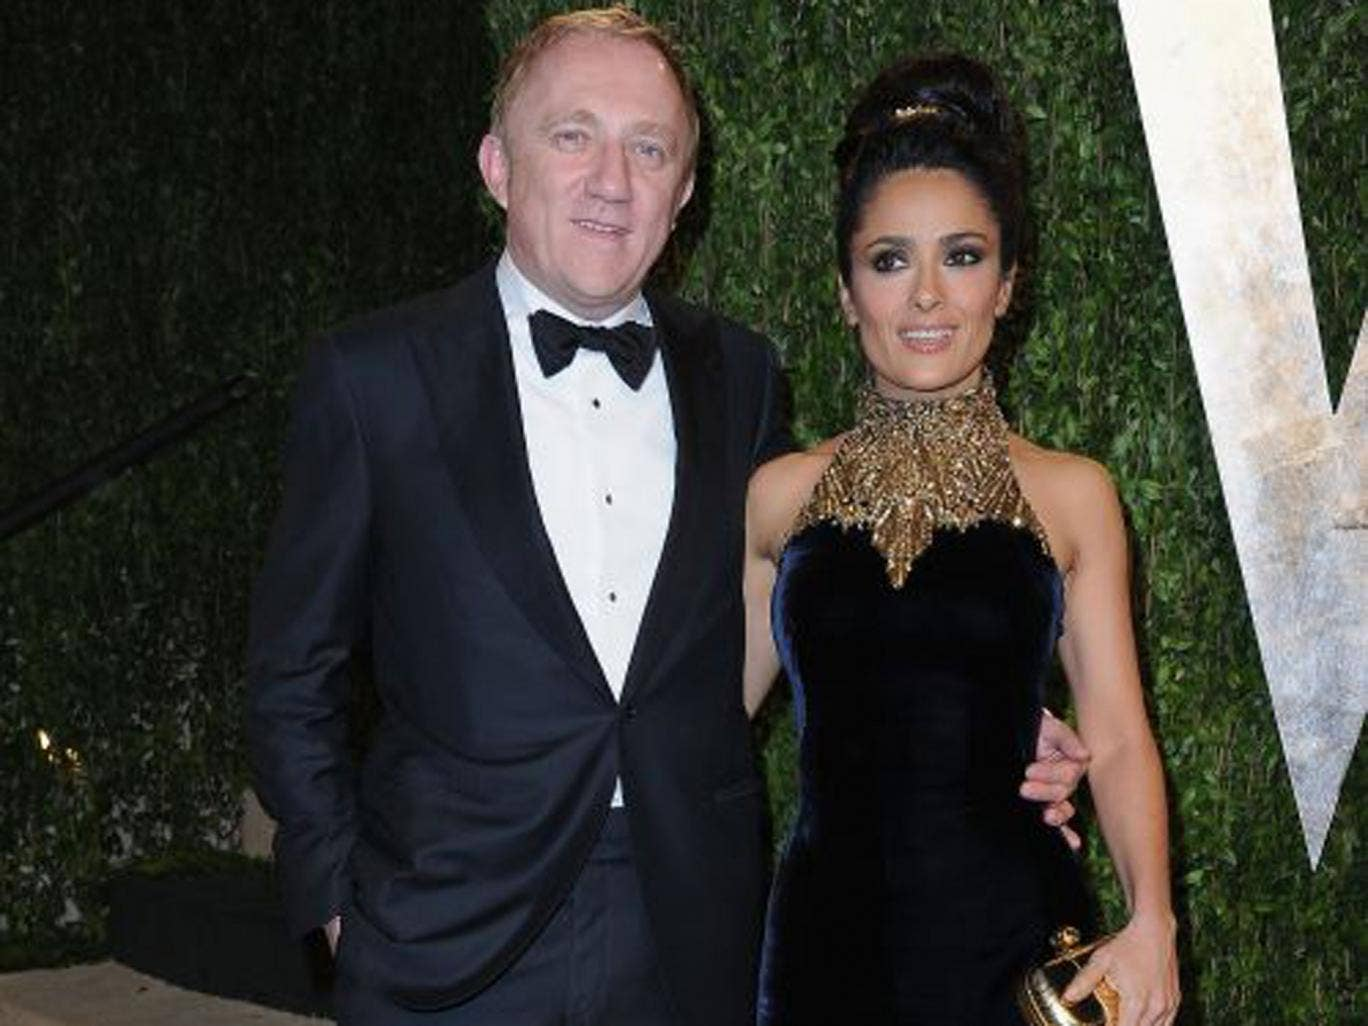 On the arm of his film star wife, Salma Hayek, at least François-Henri Pinault gets recognised in Hollywood and business circles